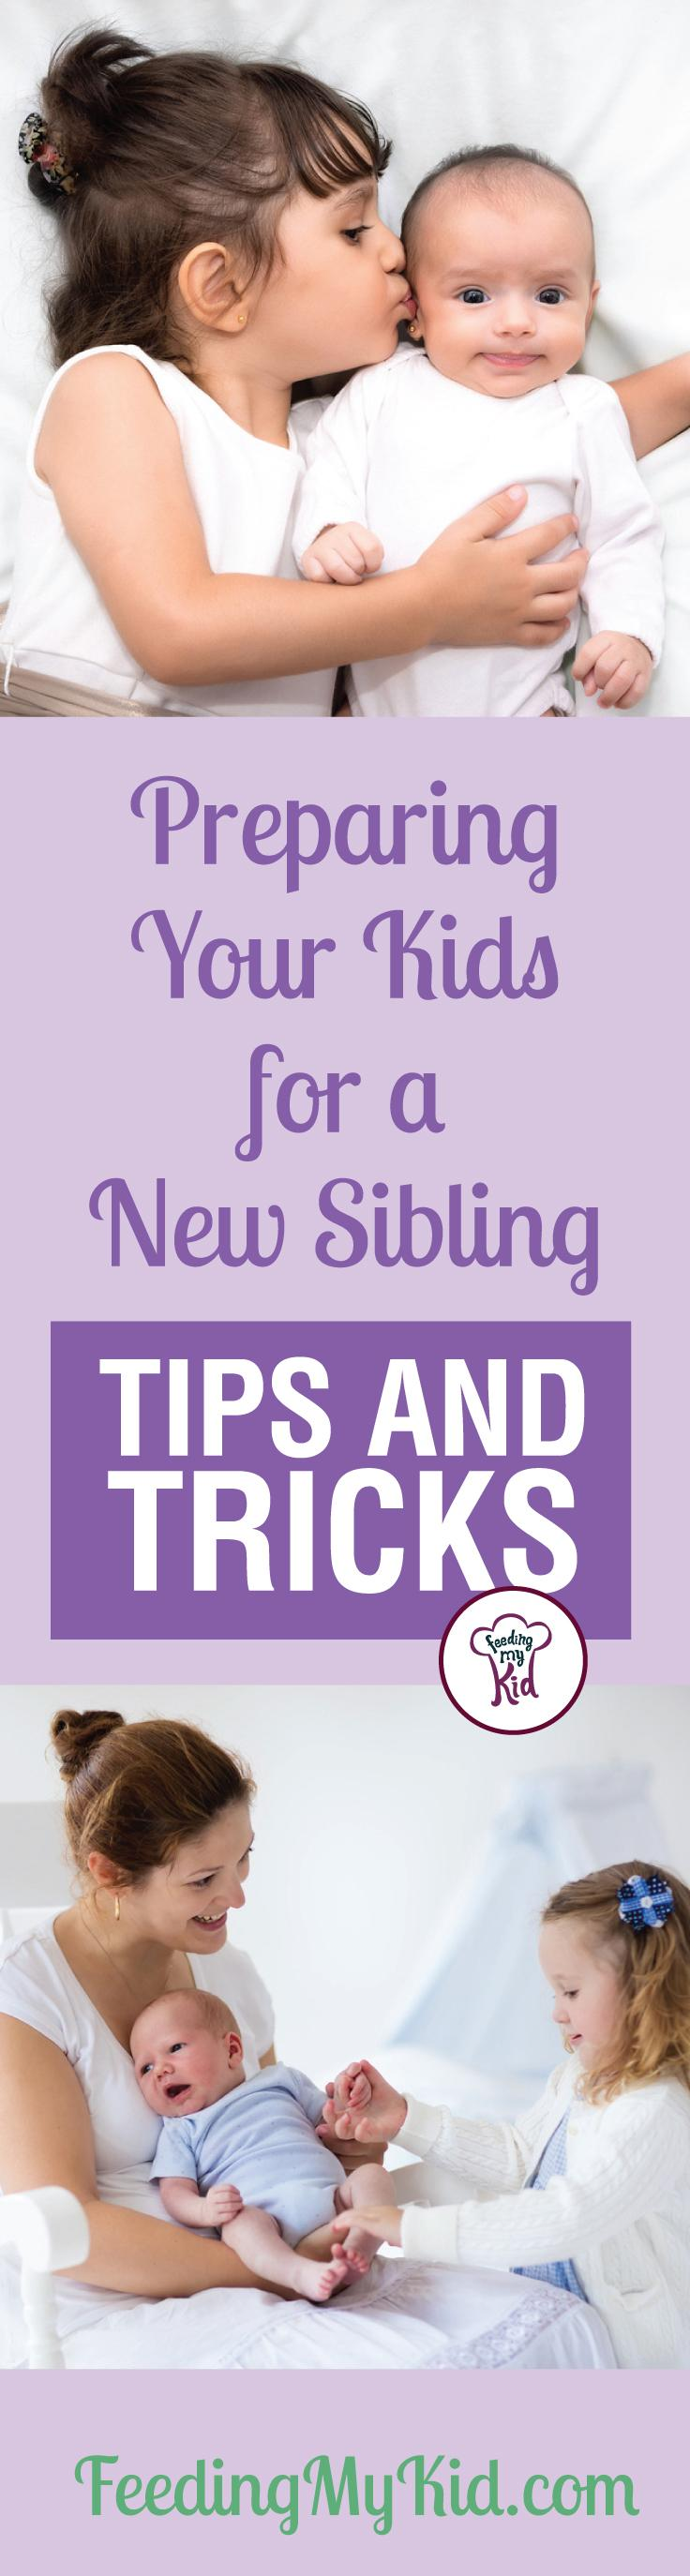 Learn tips to prepare your child for a new sibling. These tips will help parents develop and foster a sibling bond for their little ones.